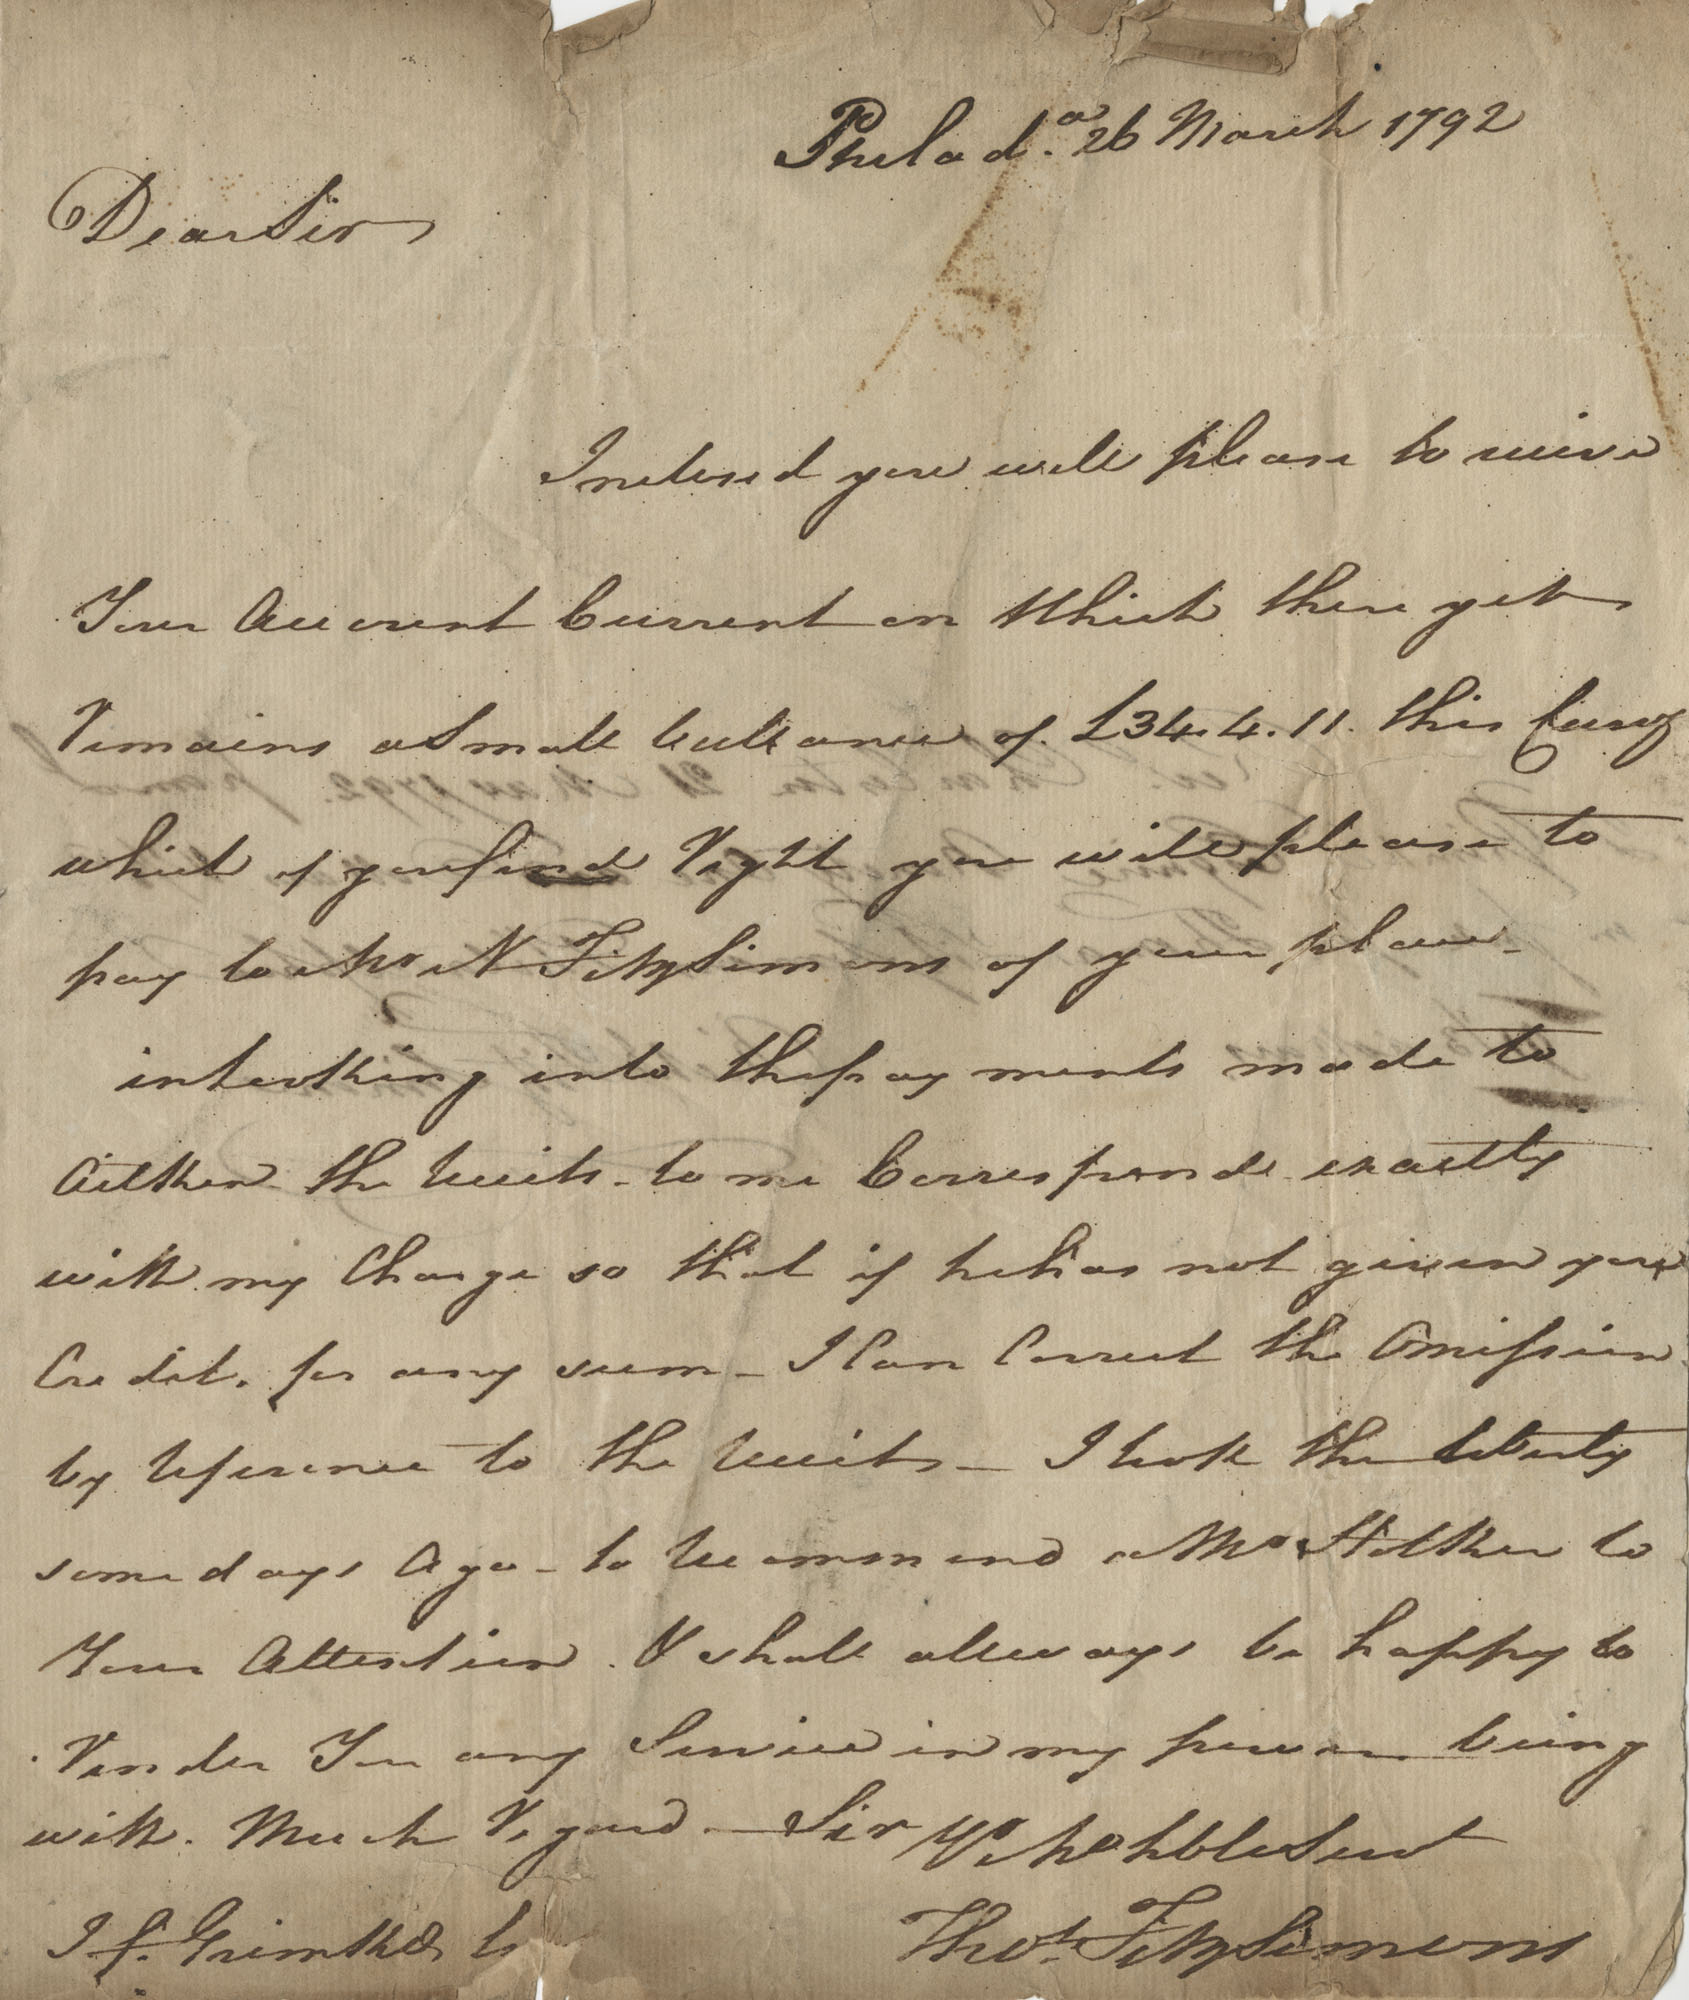 Letter to John F. Grimke from Thomas Fitzsimmons, March 26, 1792